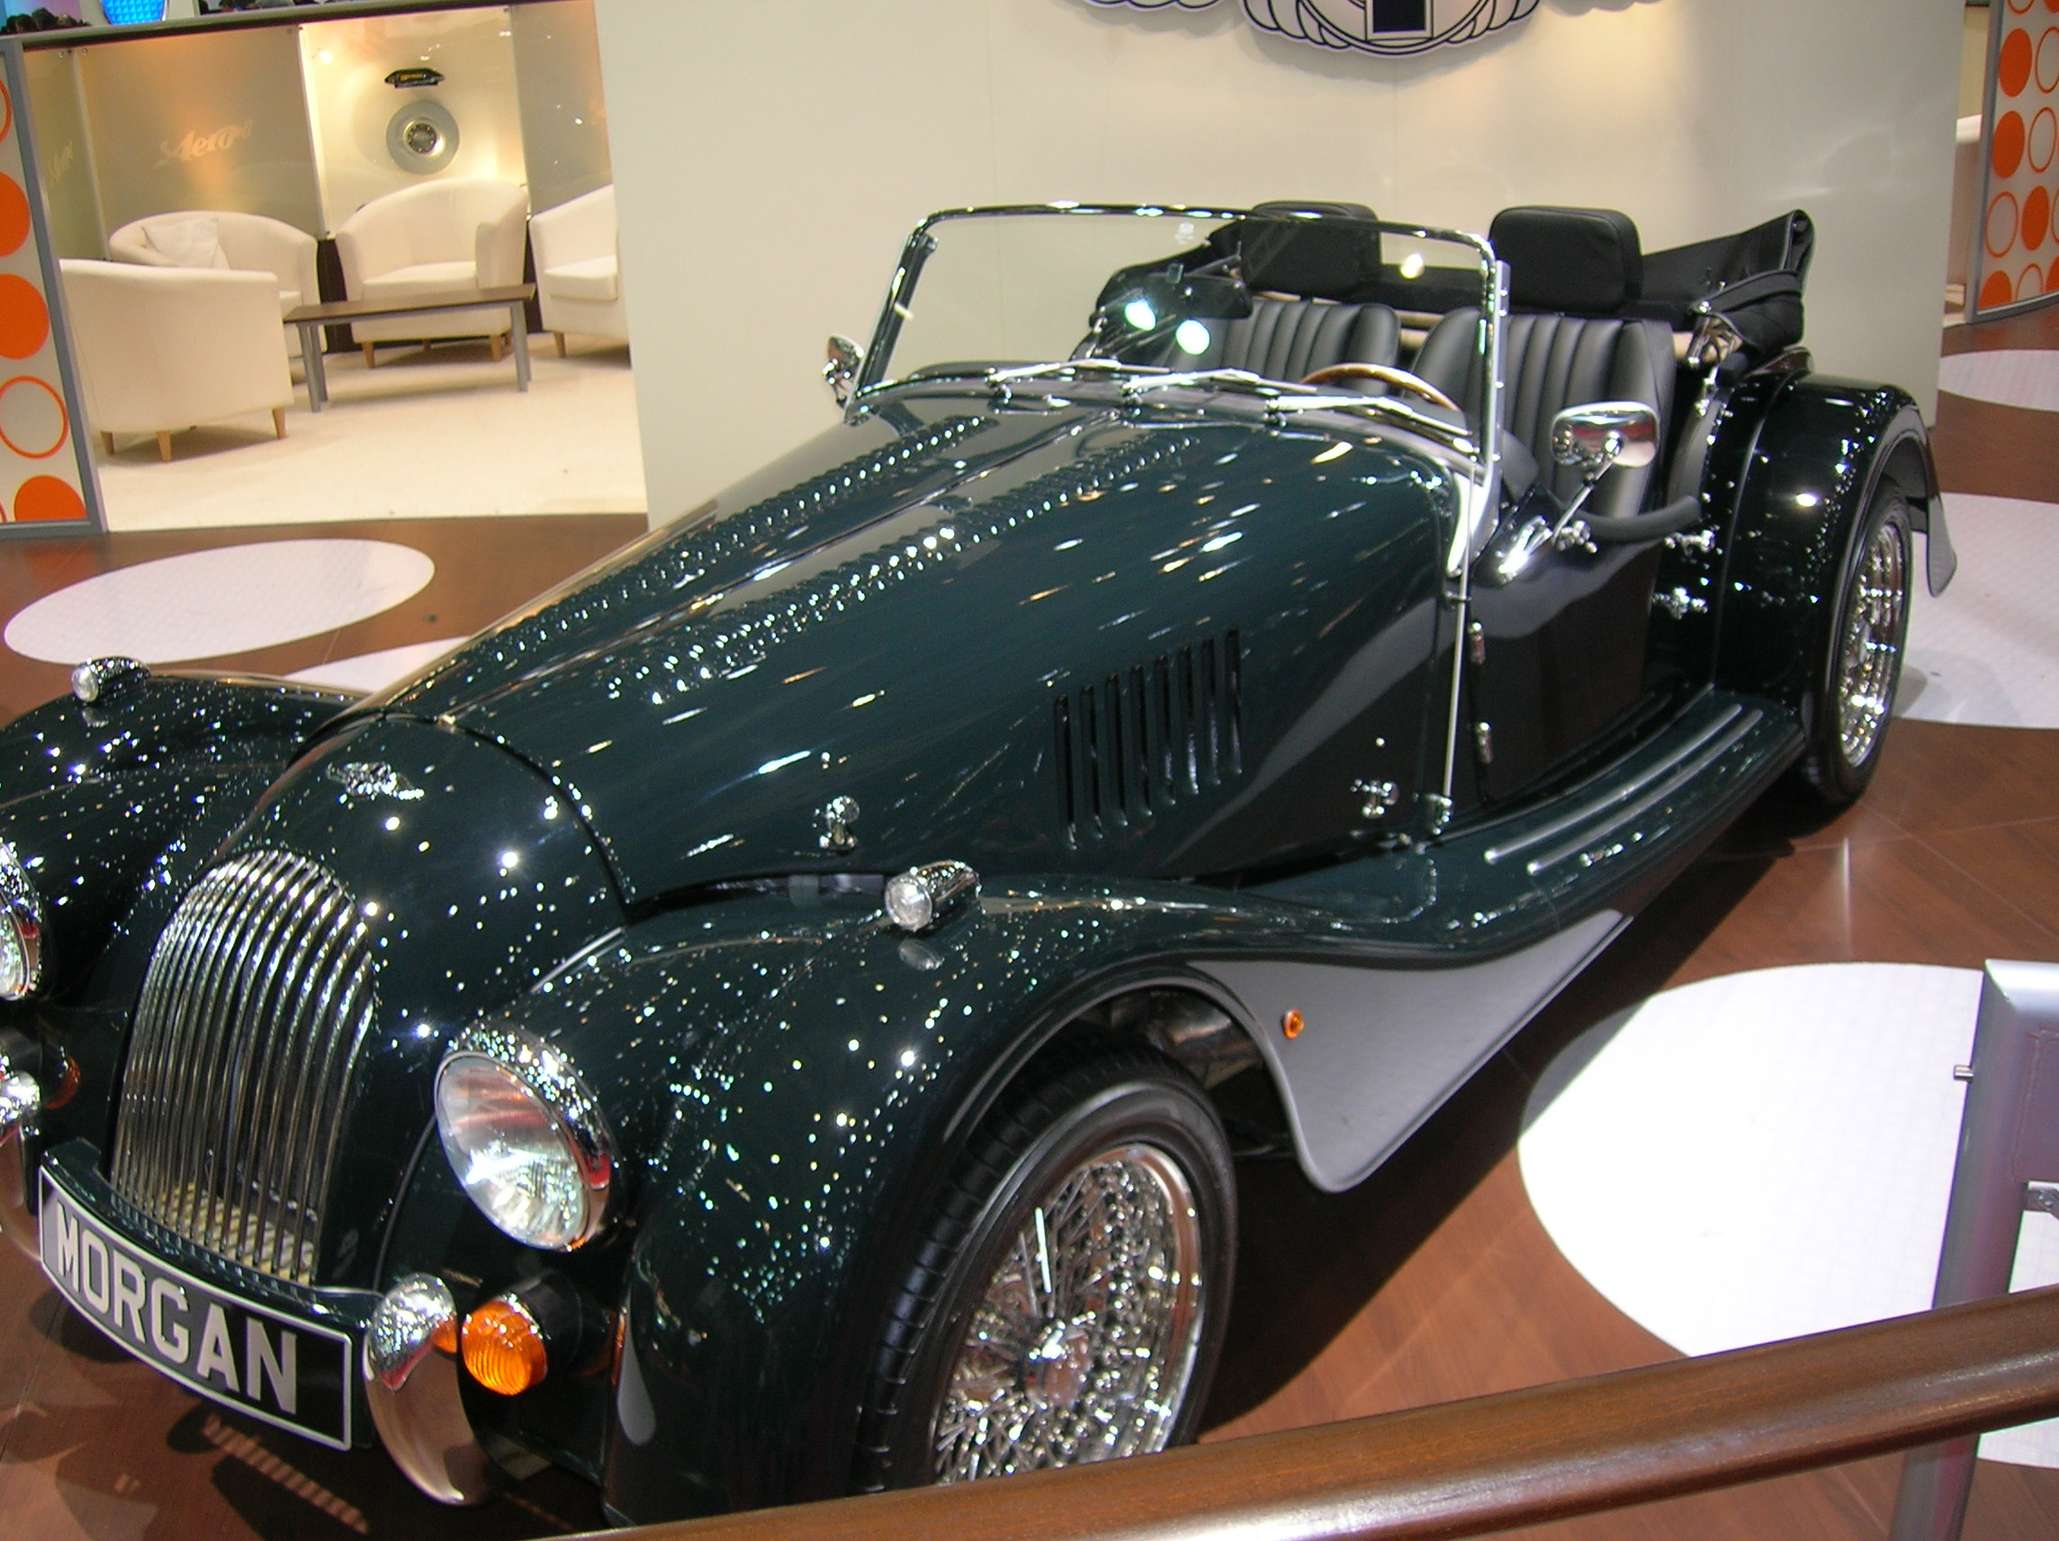 Morgan Roadster #9209478